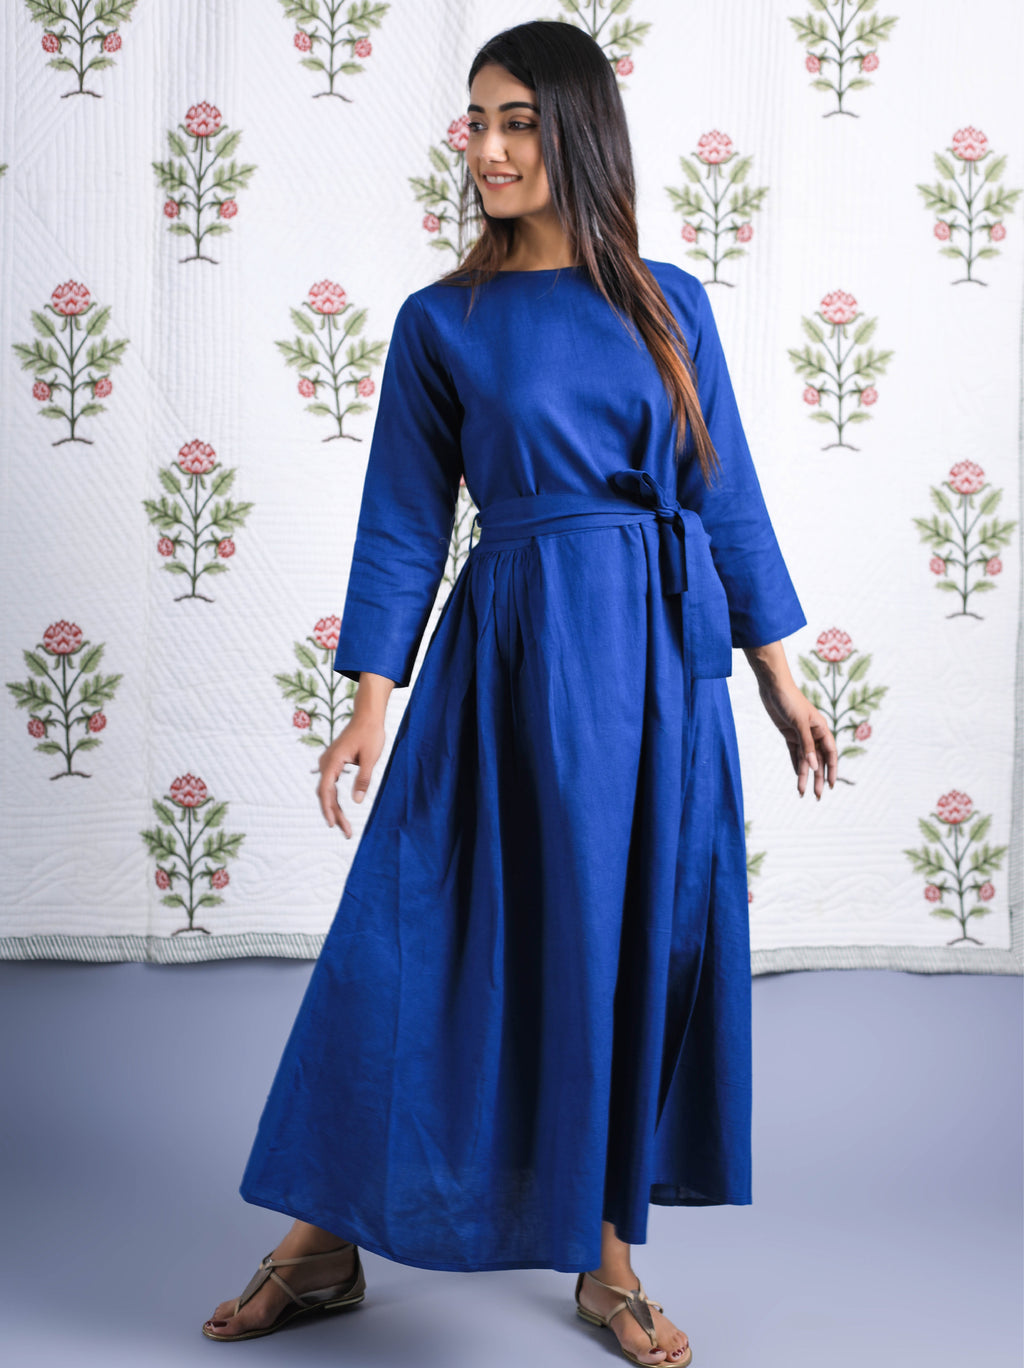 Organic Cotton Maxi Dress With Waist Belt